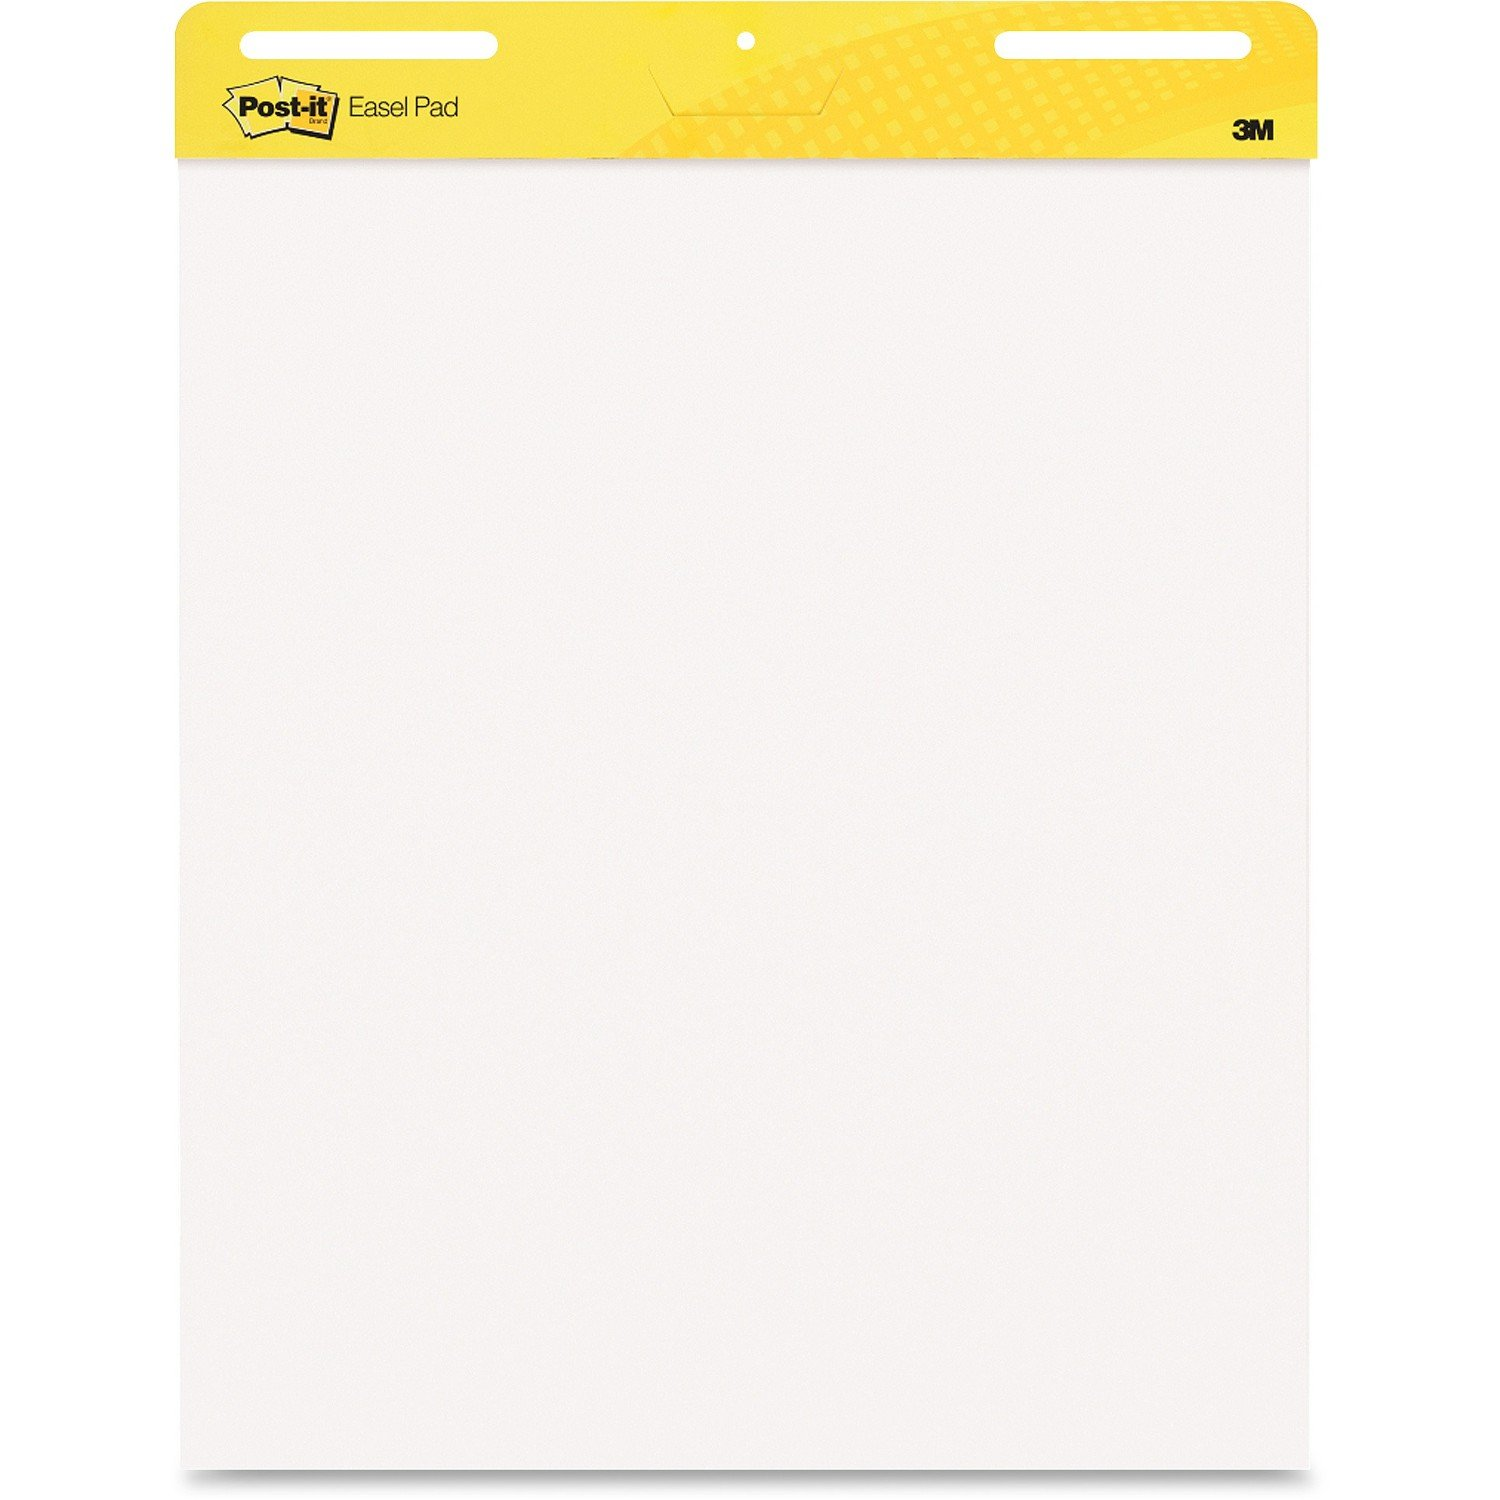 Easel Pad, Plain, White, 25 in. x 30 in. by Post-it